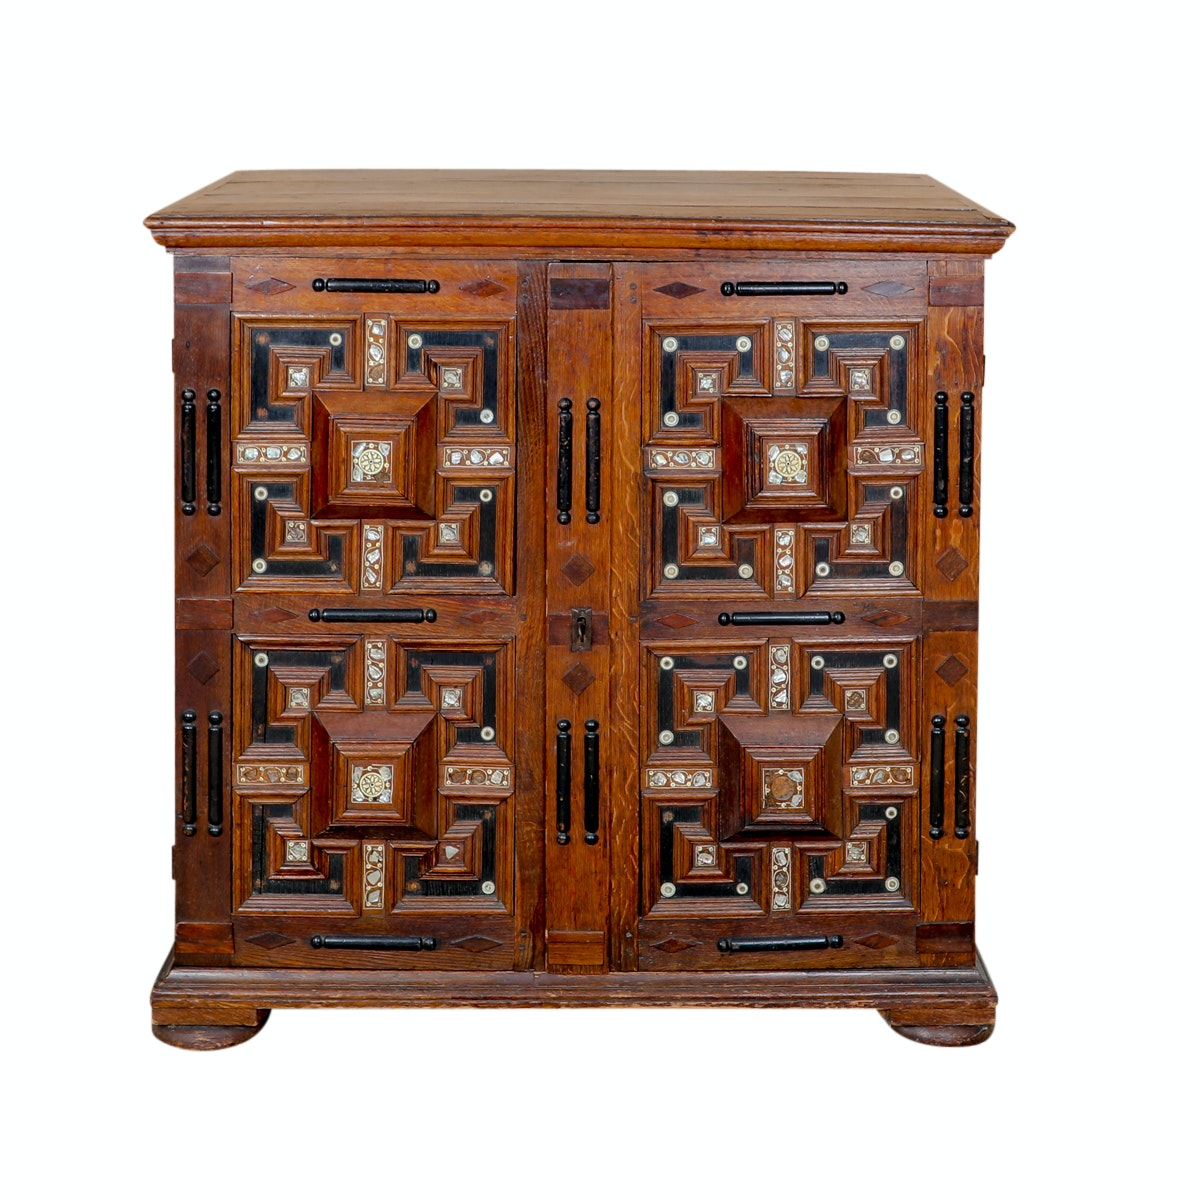 Antique 19th Century Elizabethan Style Oak Cabinet with Mother of Pearl Inlay